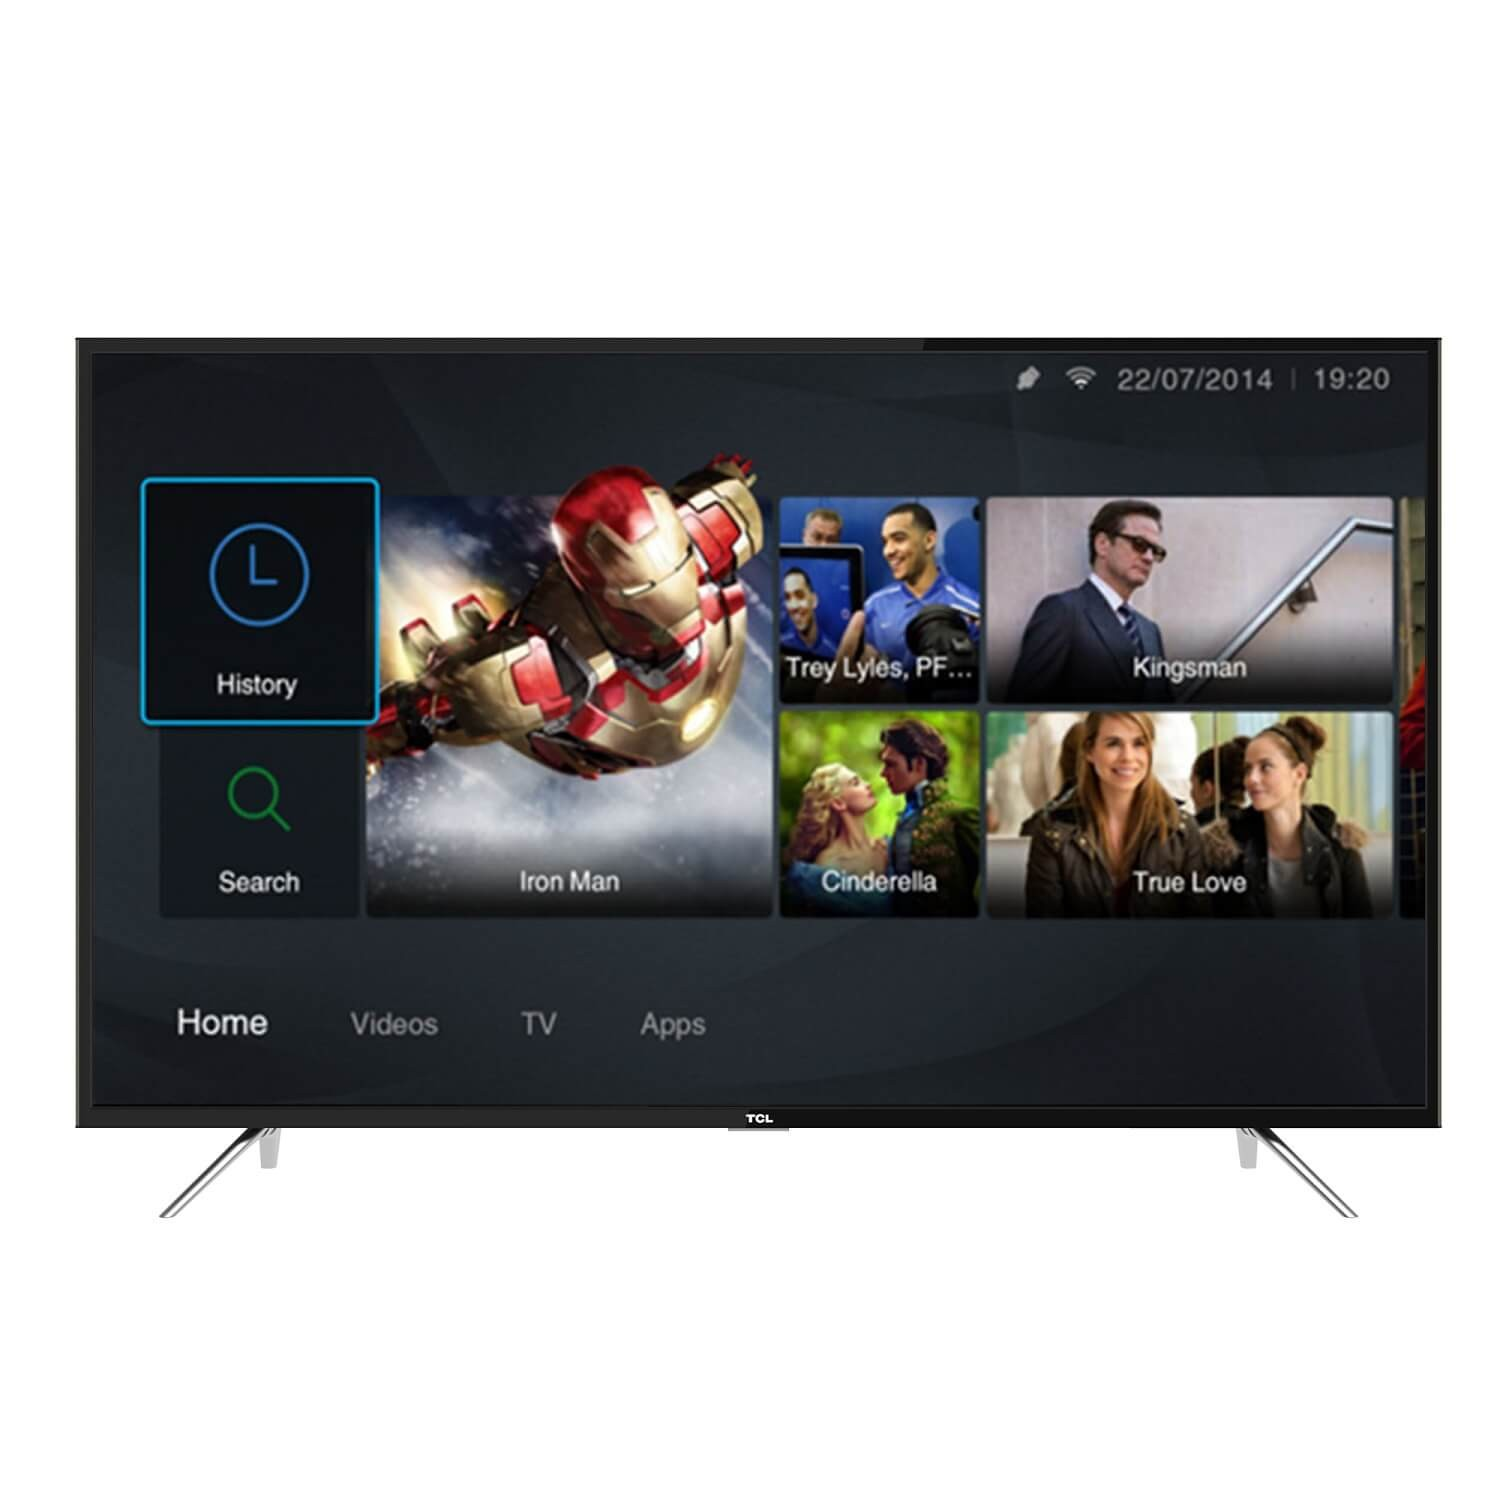 TCL 32-inch DIGITAL SMART TV - S6000 1